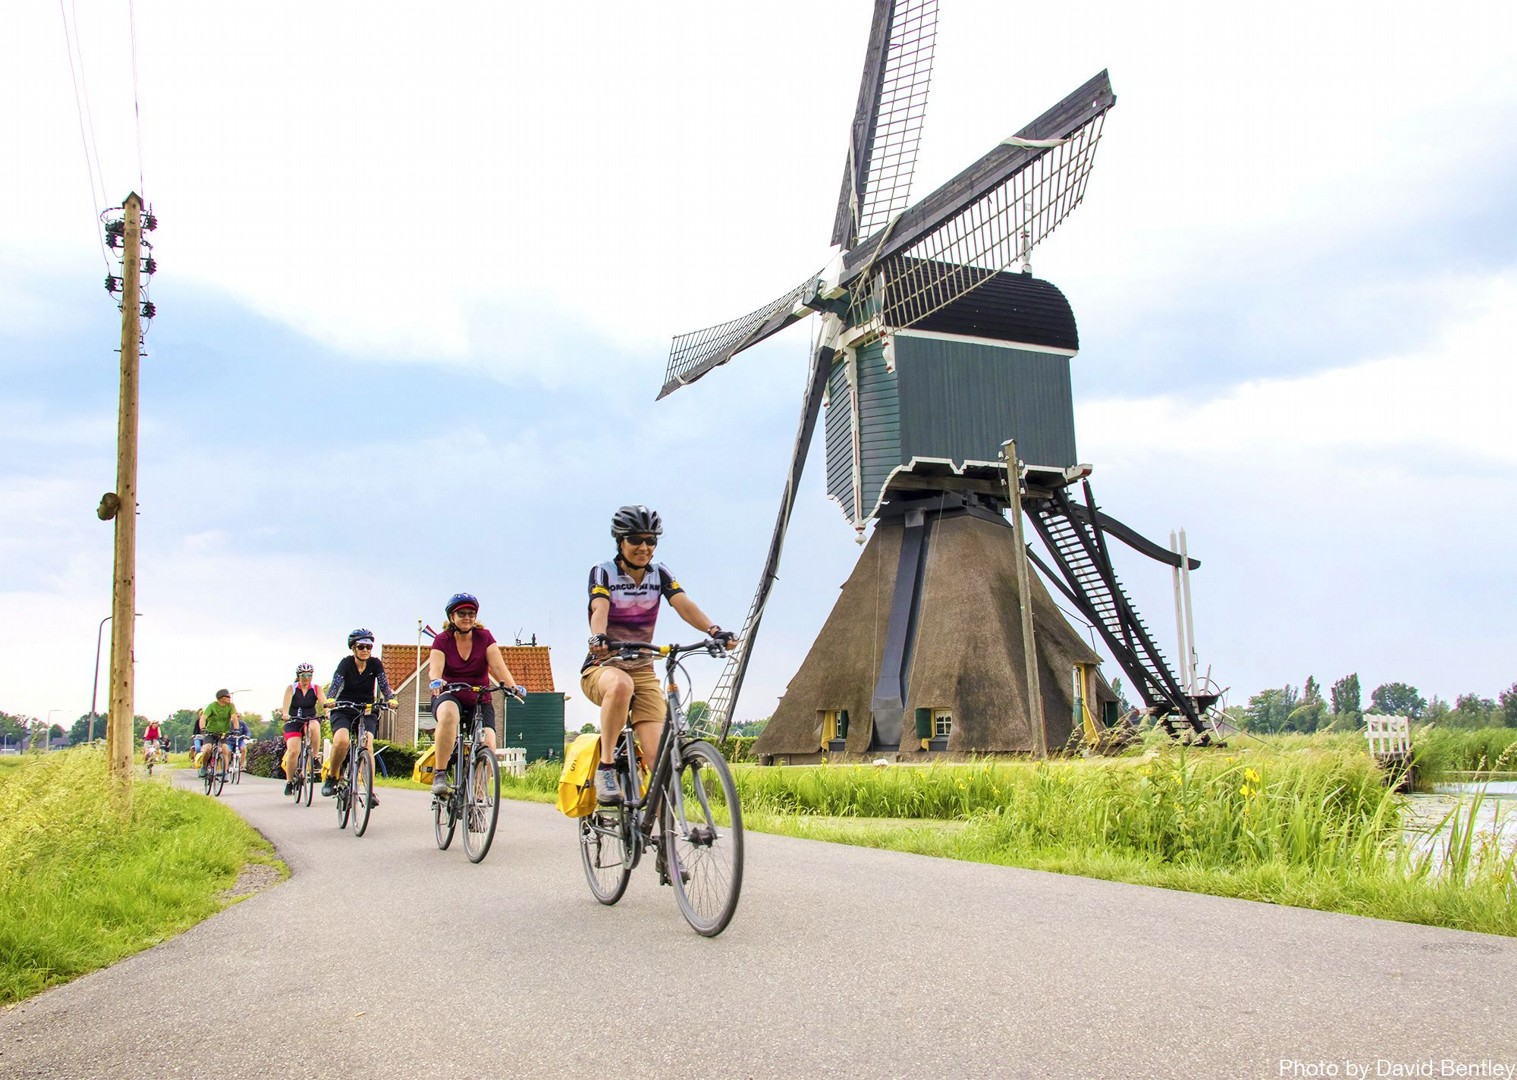 classic-holland-windmills-through-guided-cycle-tours.jpg - Holland - Windmills and Golden Beaches - Bike and Barge Holiday - Family Cycling